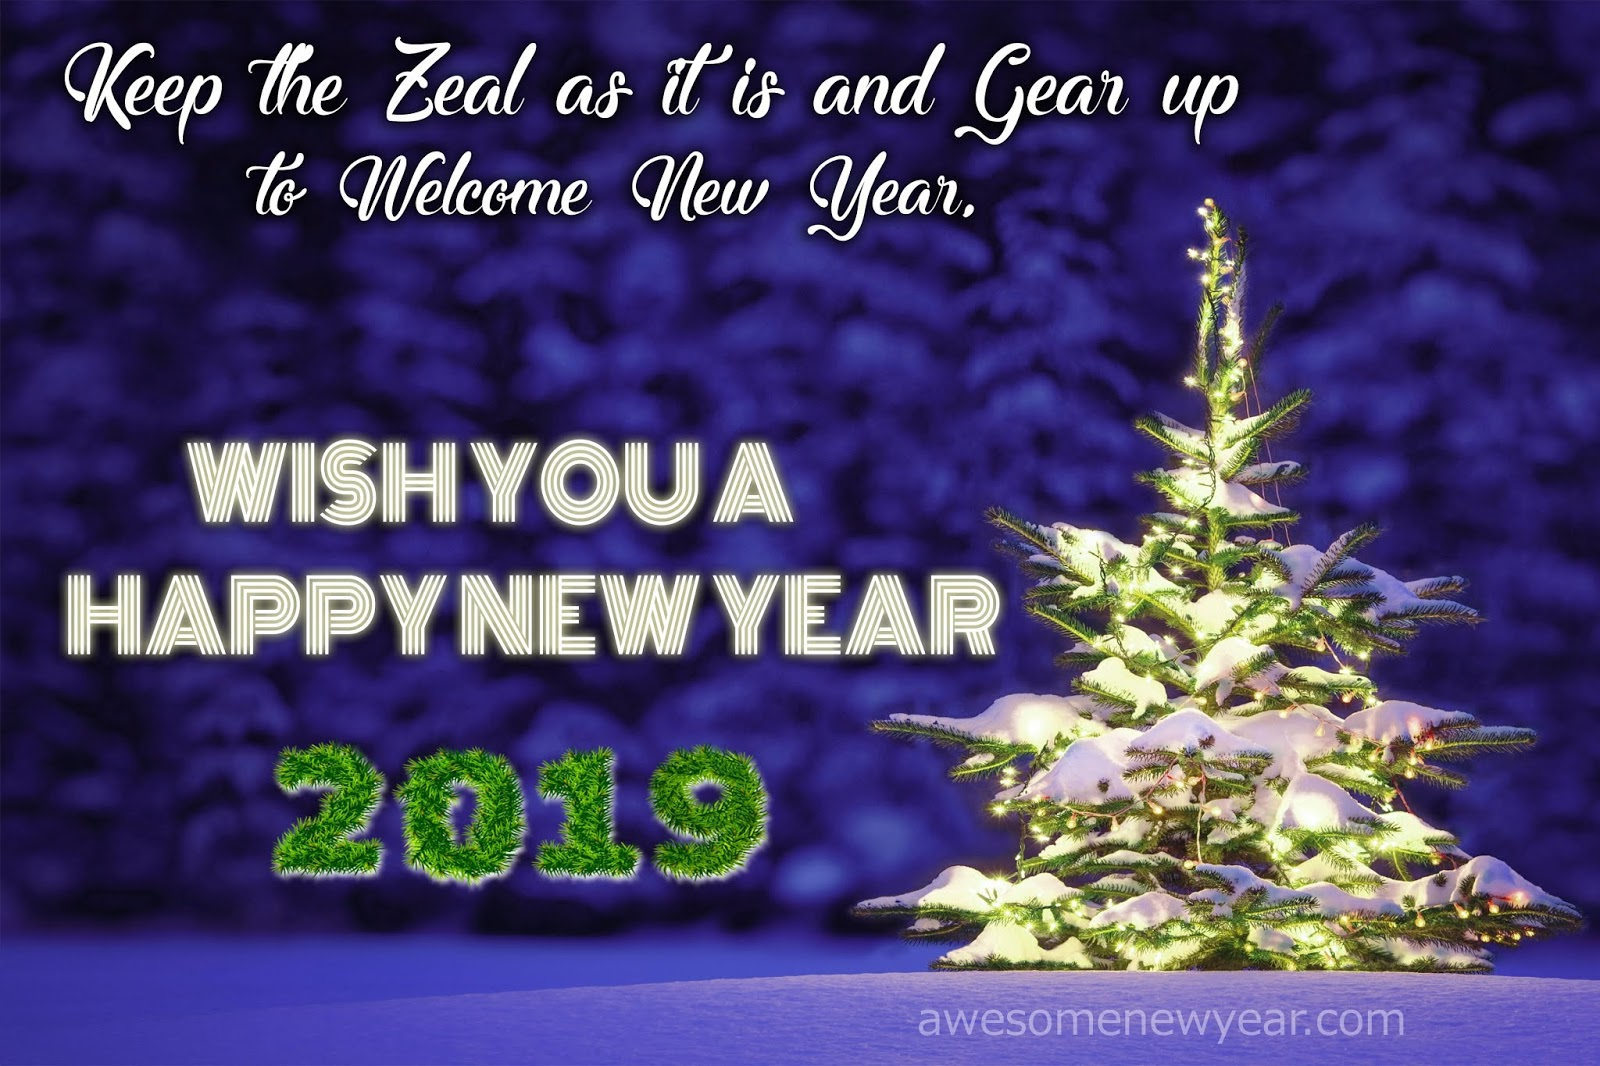 New Year 2019 Images hd